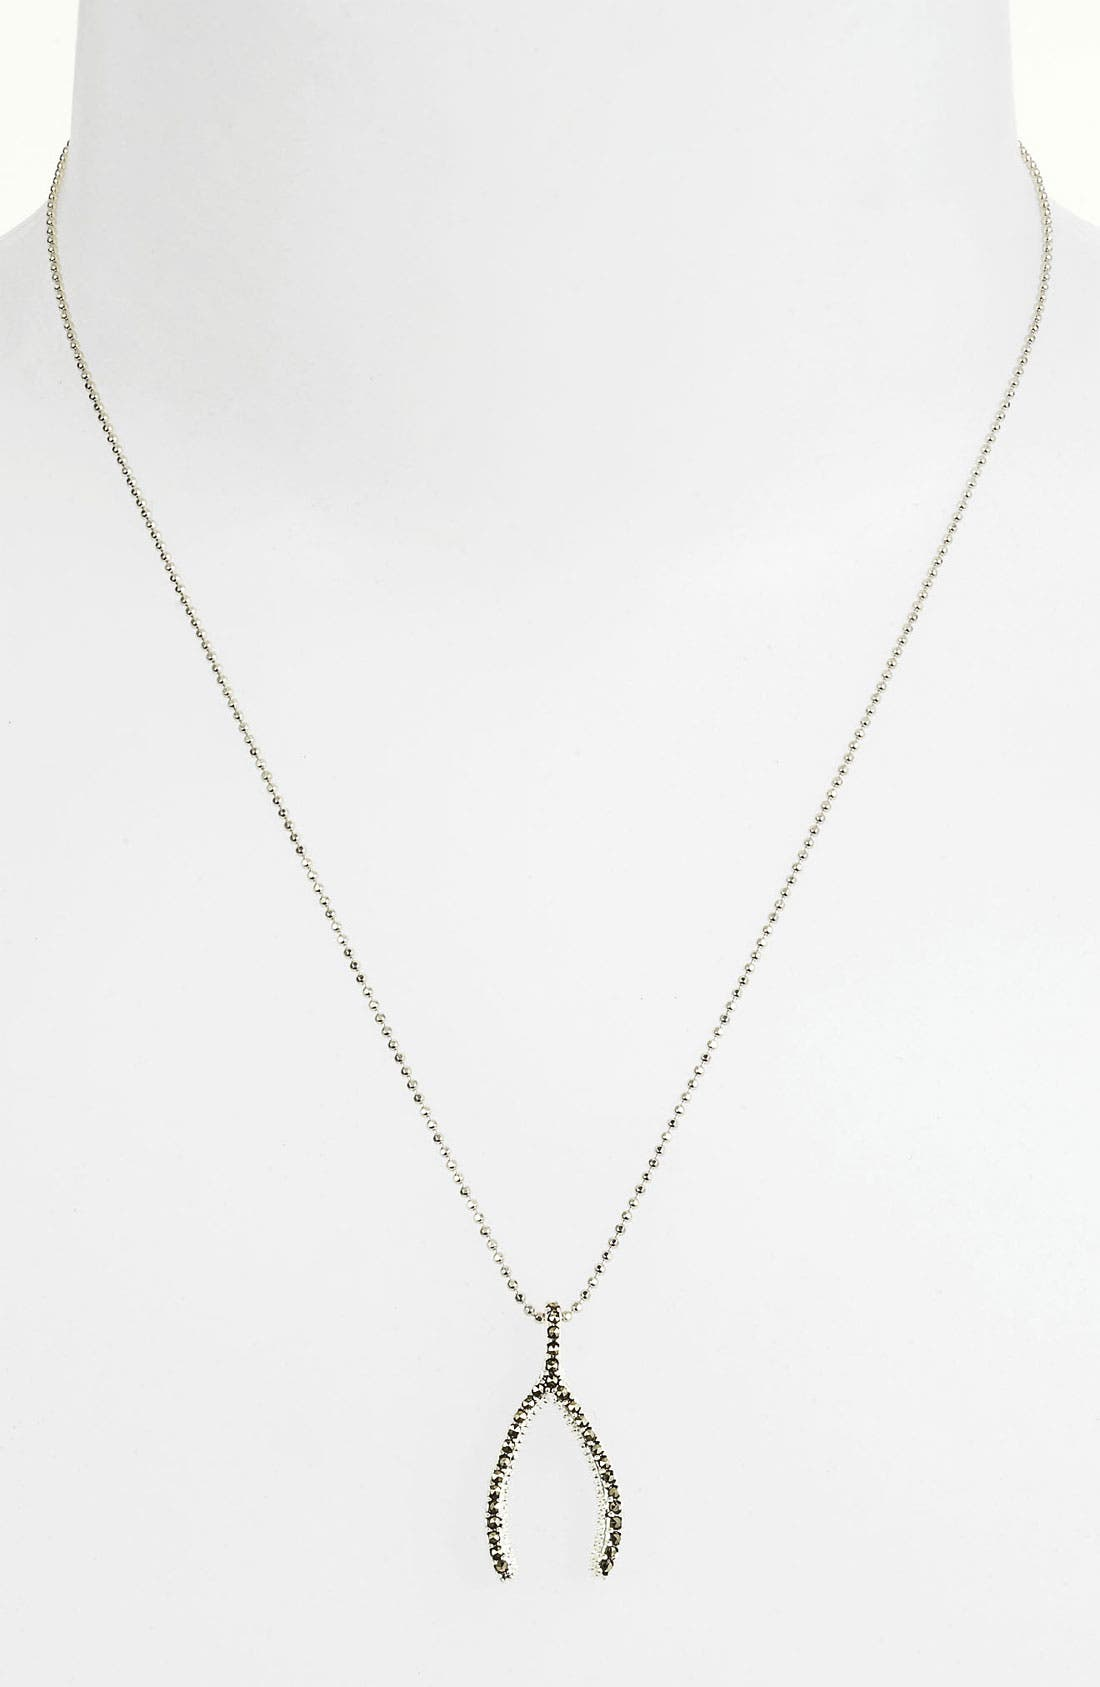 Alternate Image 1 Selected - Judith Jack Reversible Pavé Wishbone Pendant Necklace